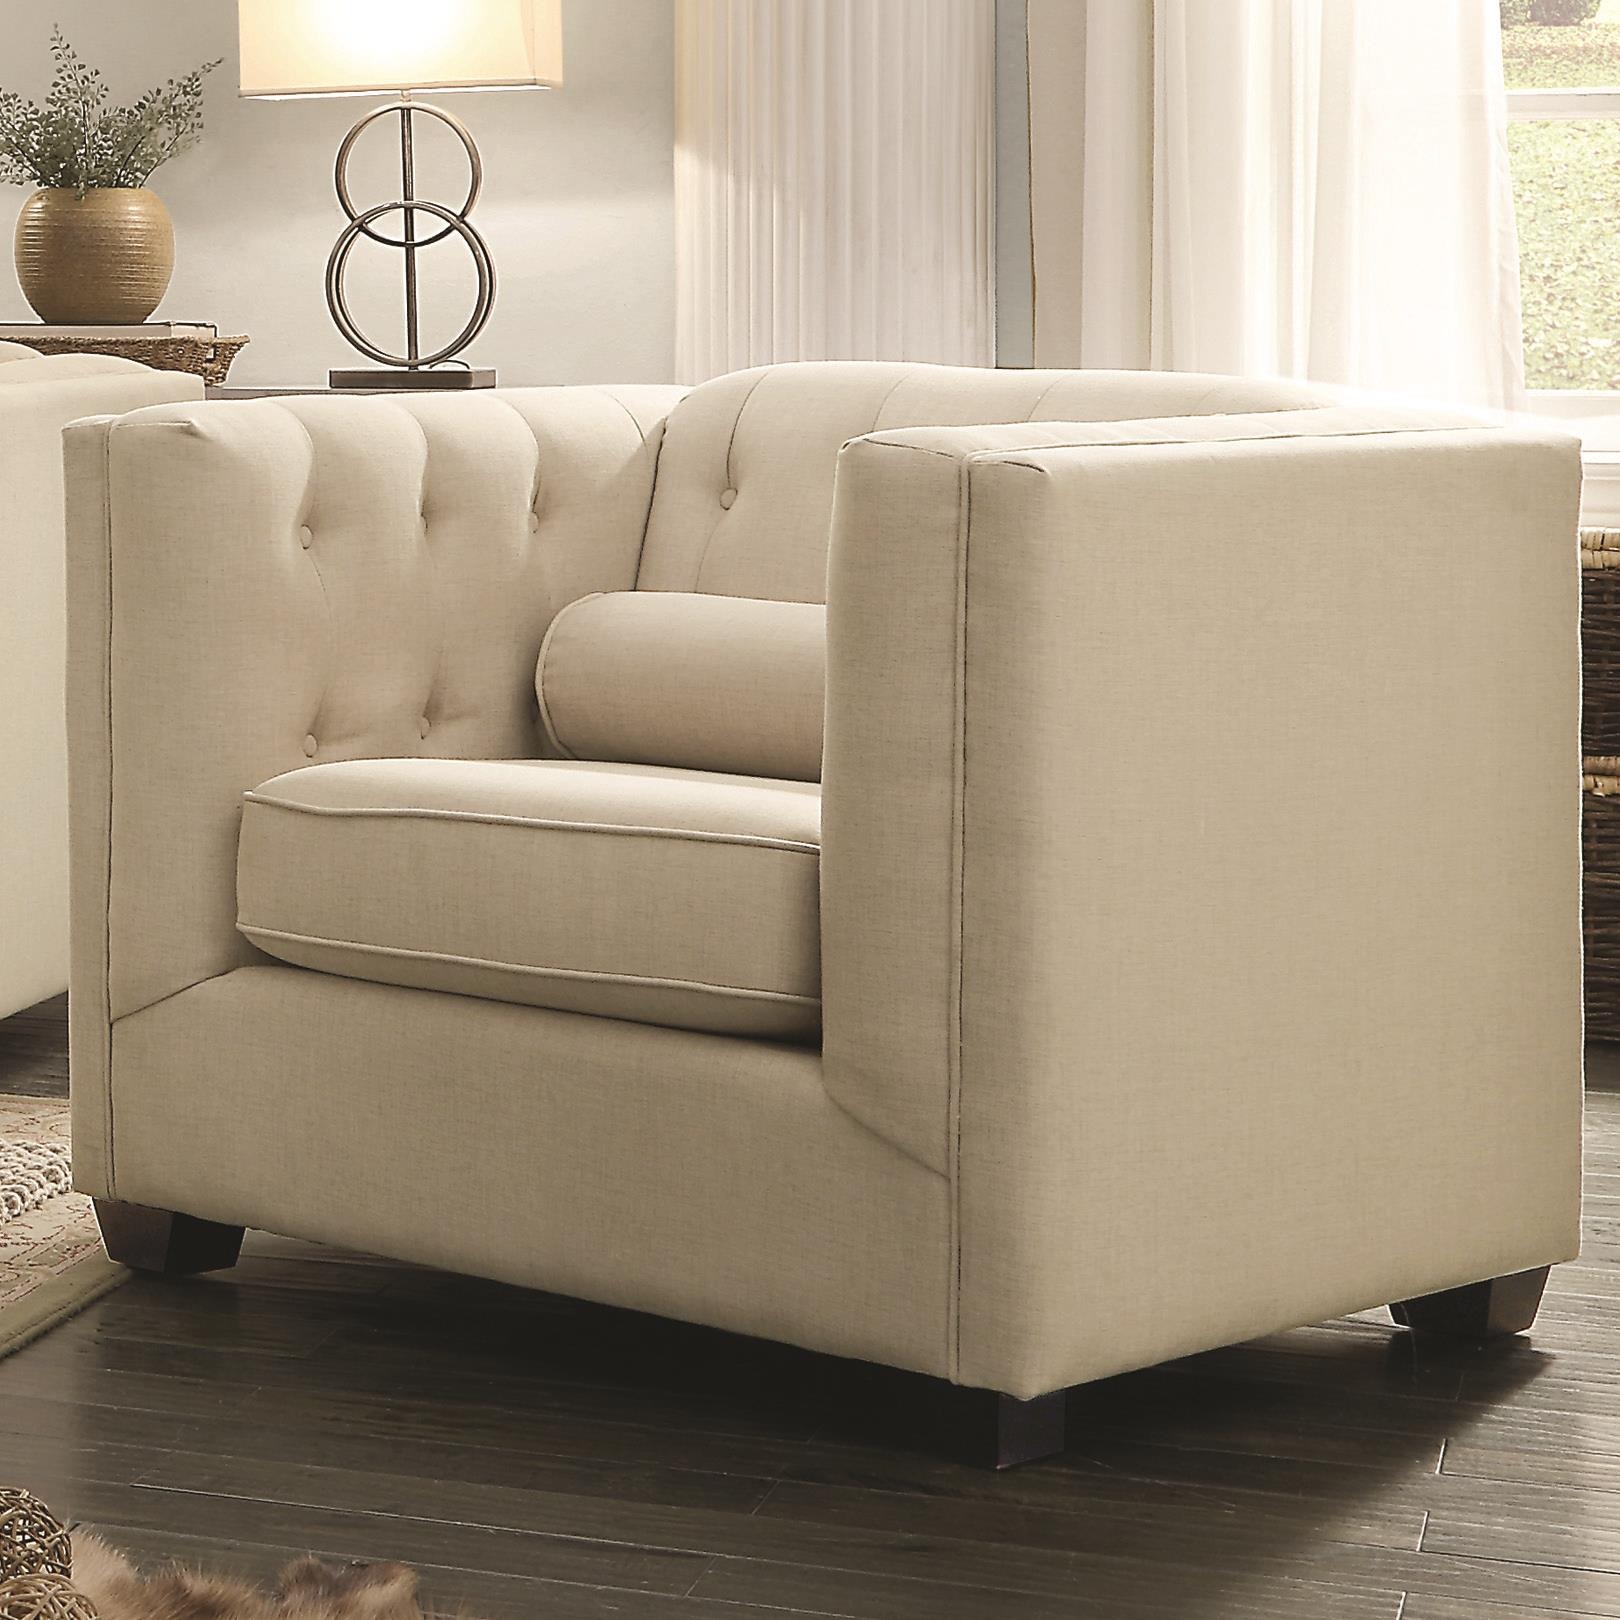 Cairns Upholstered Chair